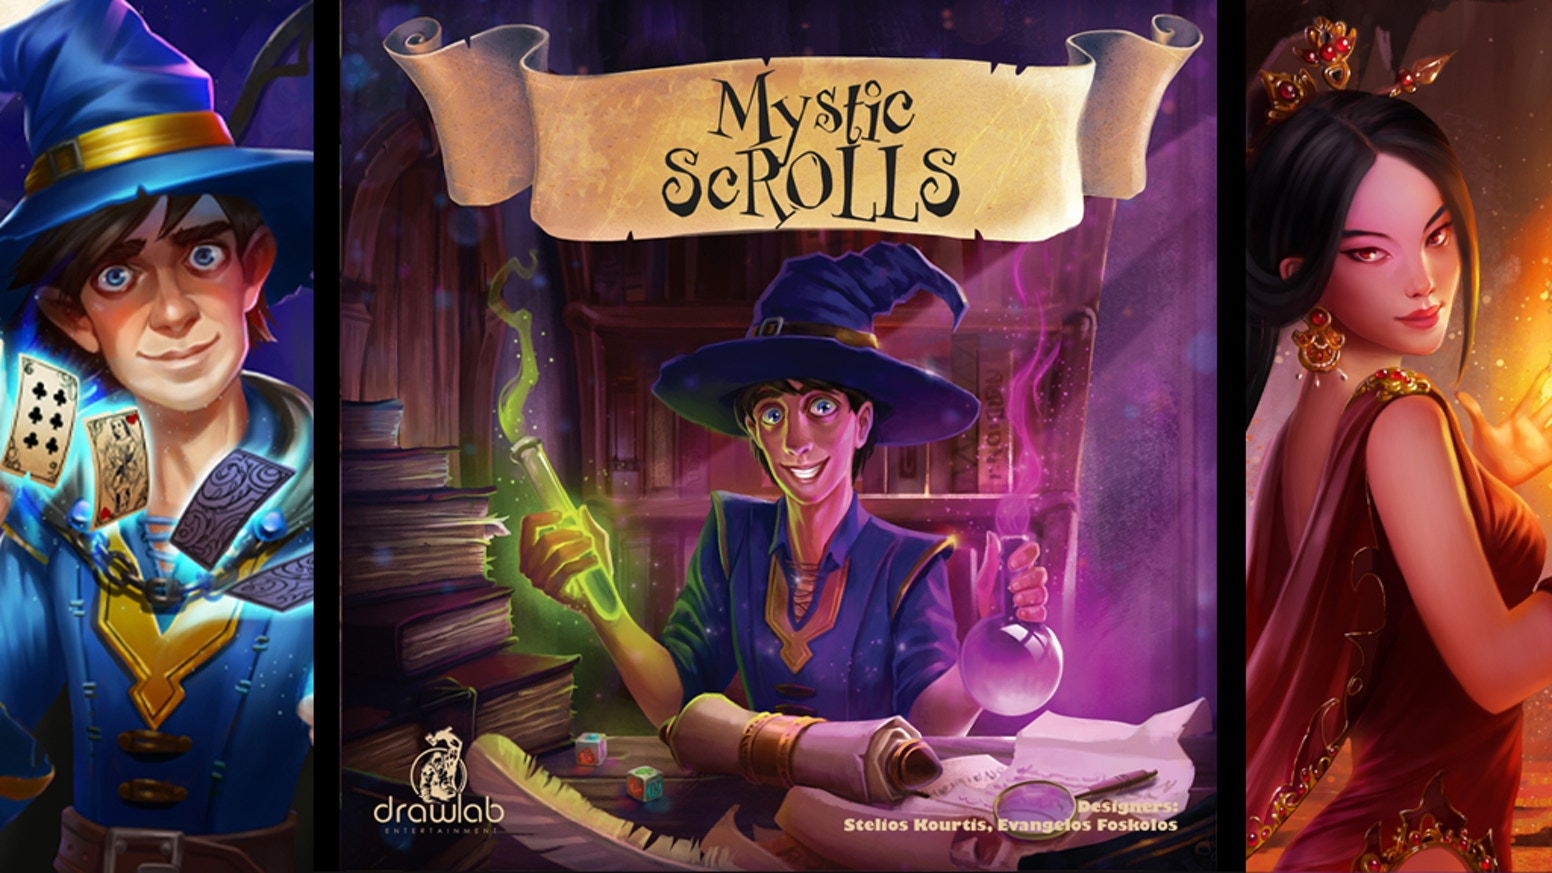 Become a wizard and gain the knowledge of the ancient scrolls in this exciting and fast real-time 20-minute dice game.